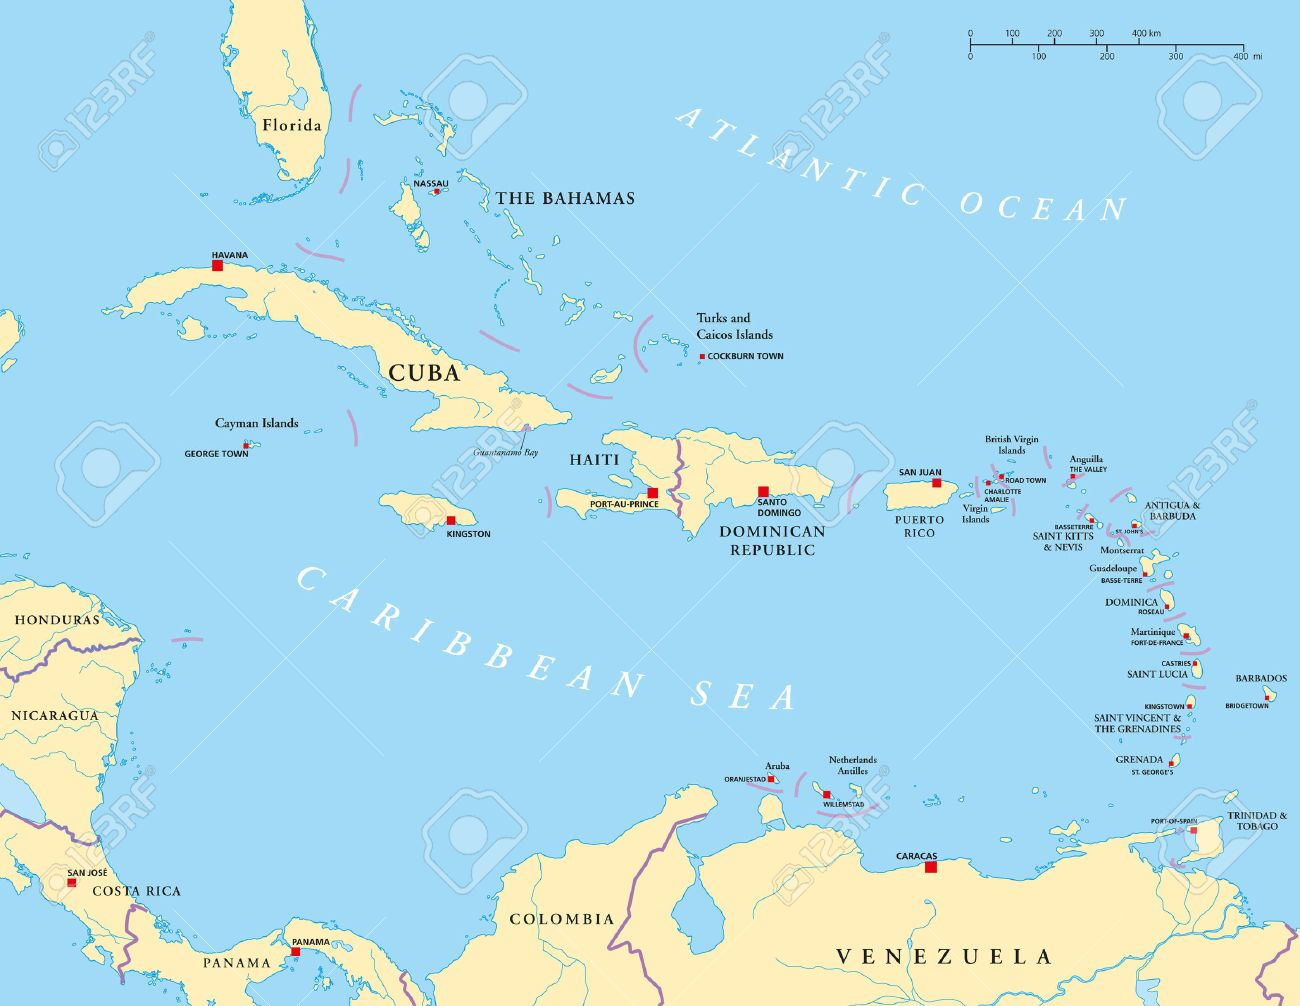 Caribbean Large And Lesser Antilles Political Map Royalty Free - Political map of barbados